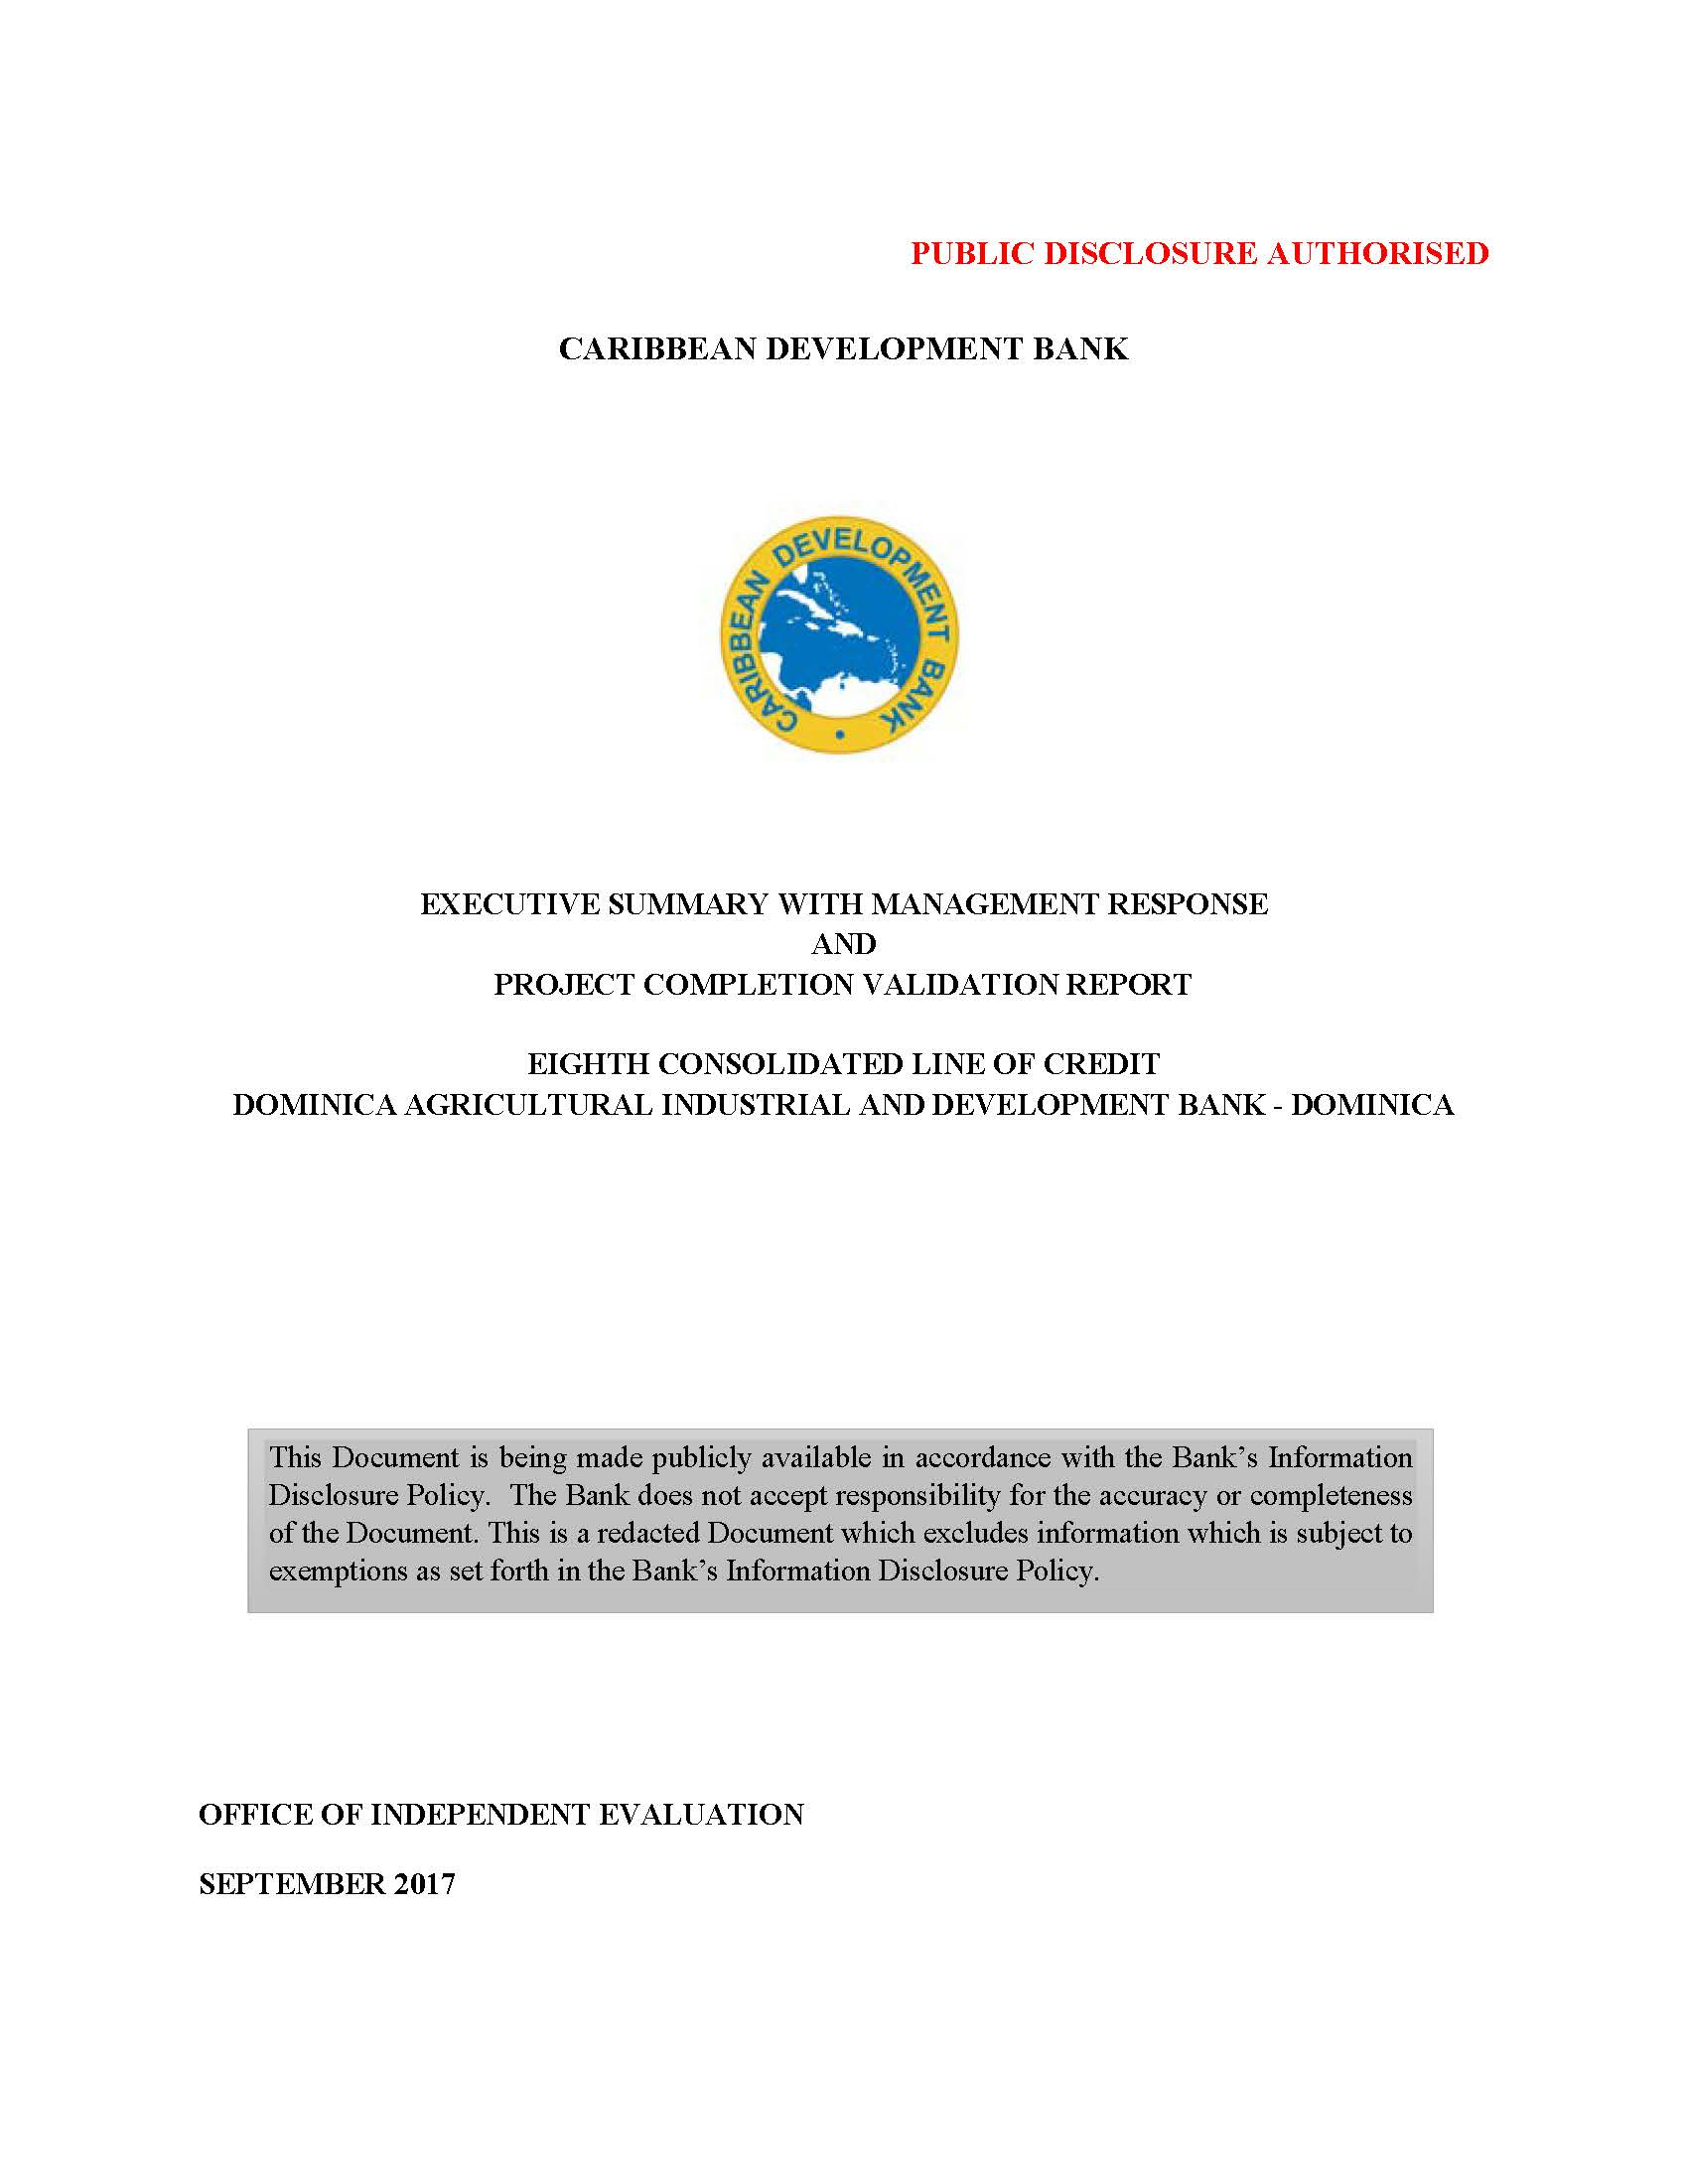 text-based cover with document title against white backdrop